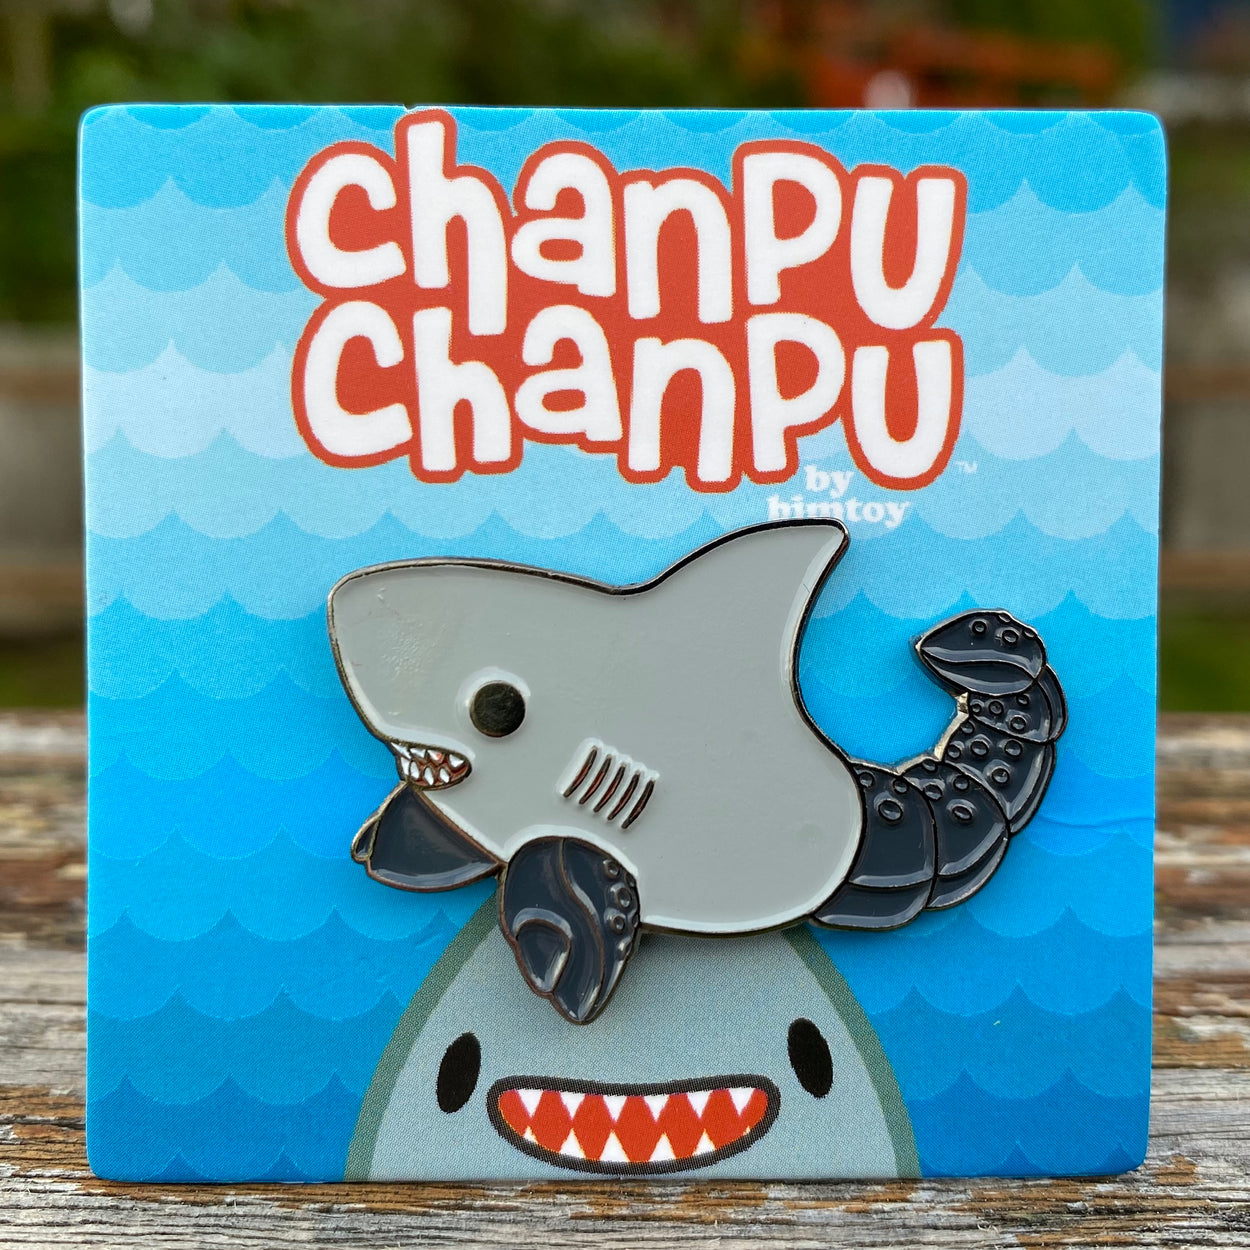 Chanpu Chanpu (Scorpion) Enamel Pin